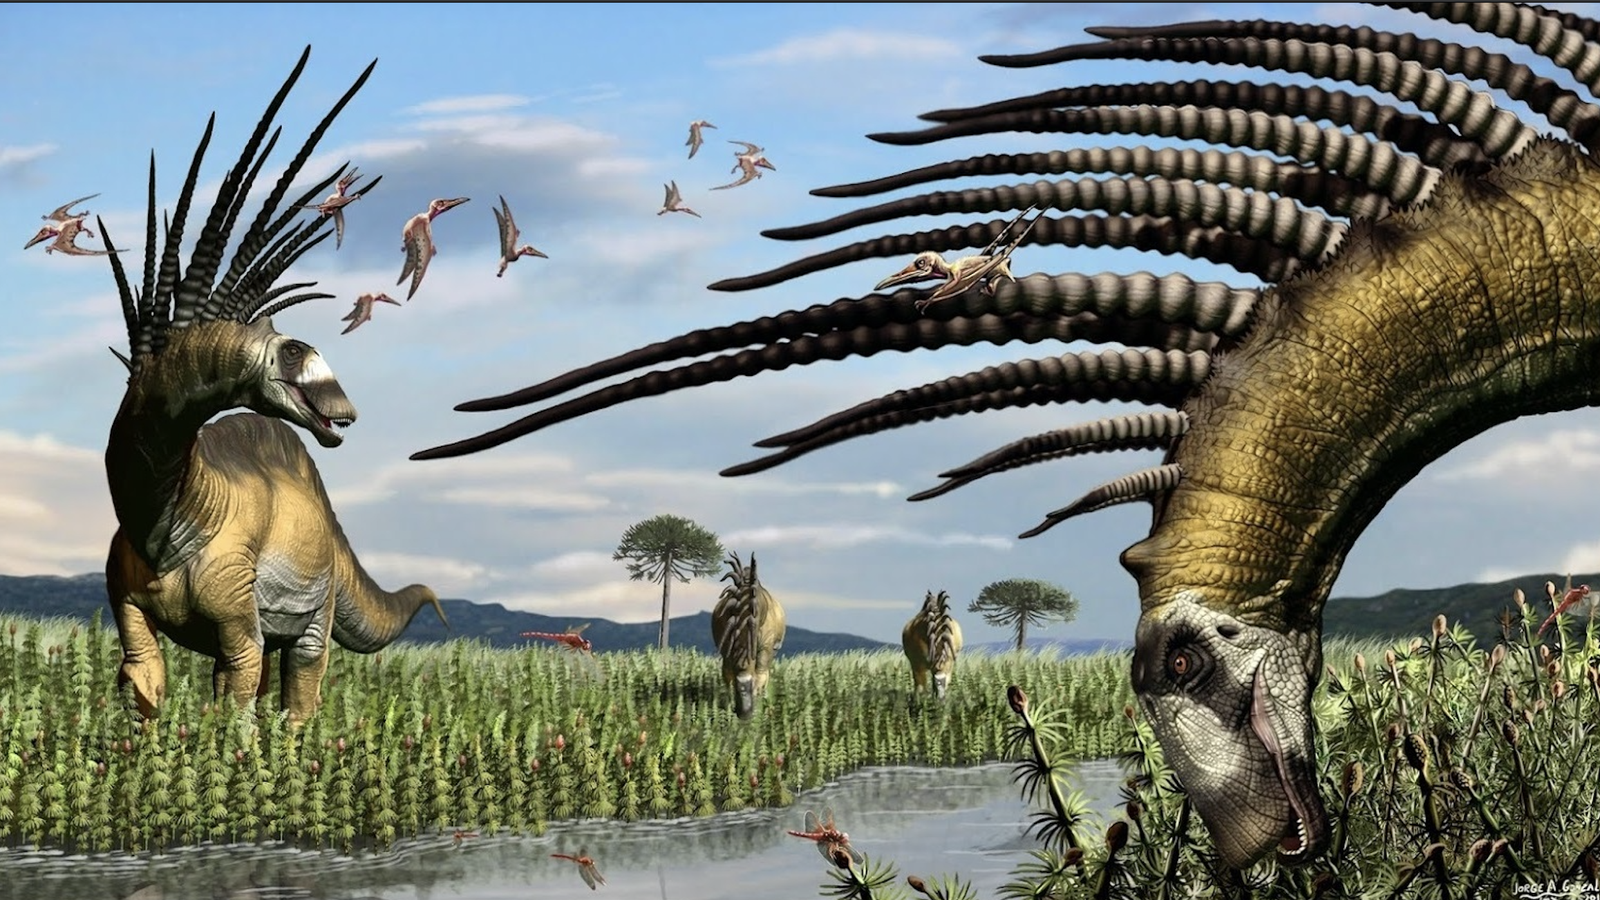 Newly Discovered Spiked Dinosaurs From South America Look Like Creatures From 'No Man's Sky'